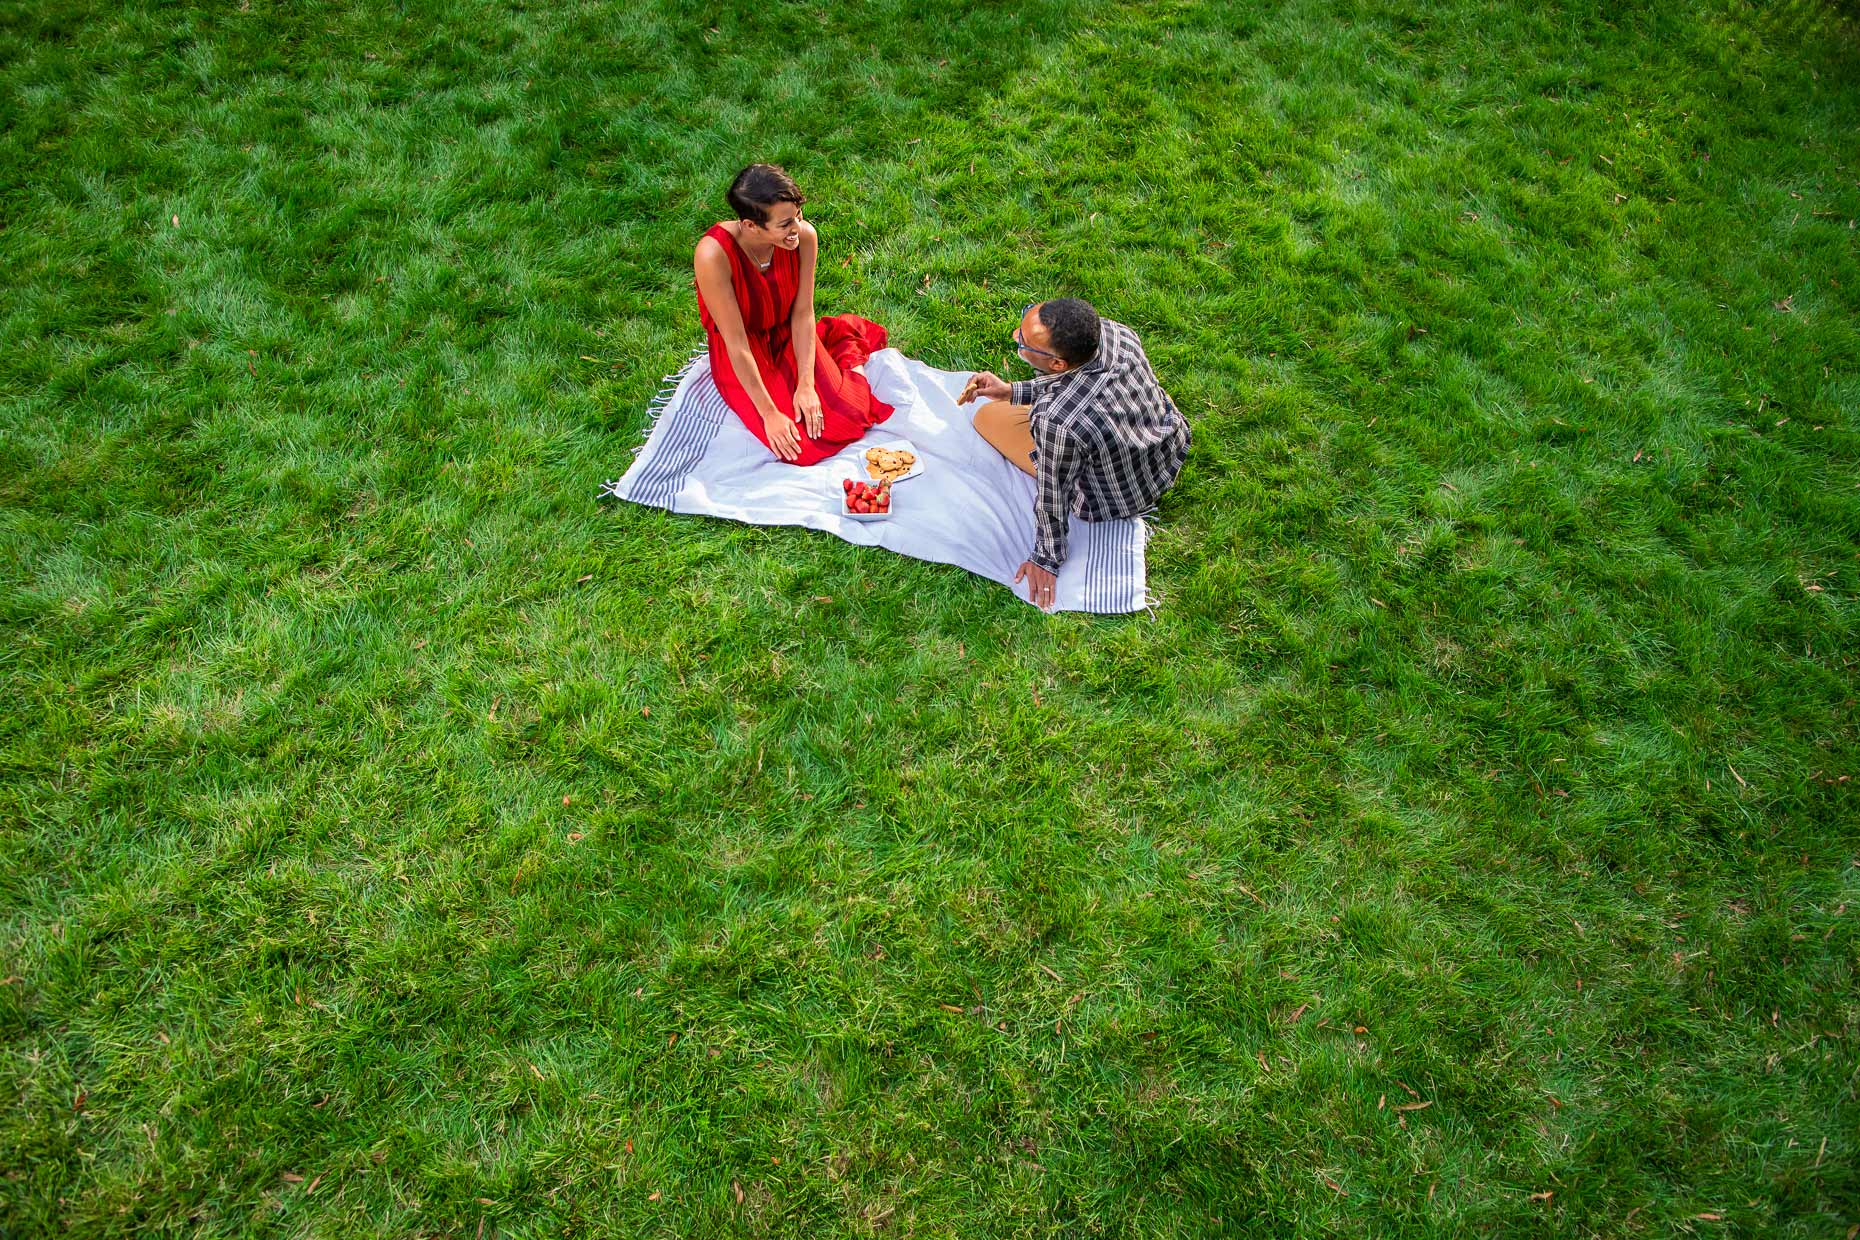 _13477_overhead-view-couple-on-picnic-blanket-backyard_Robert-Holland